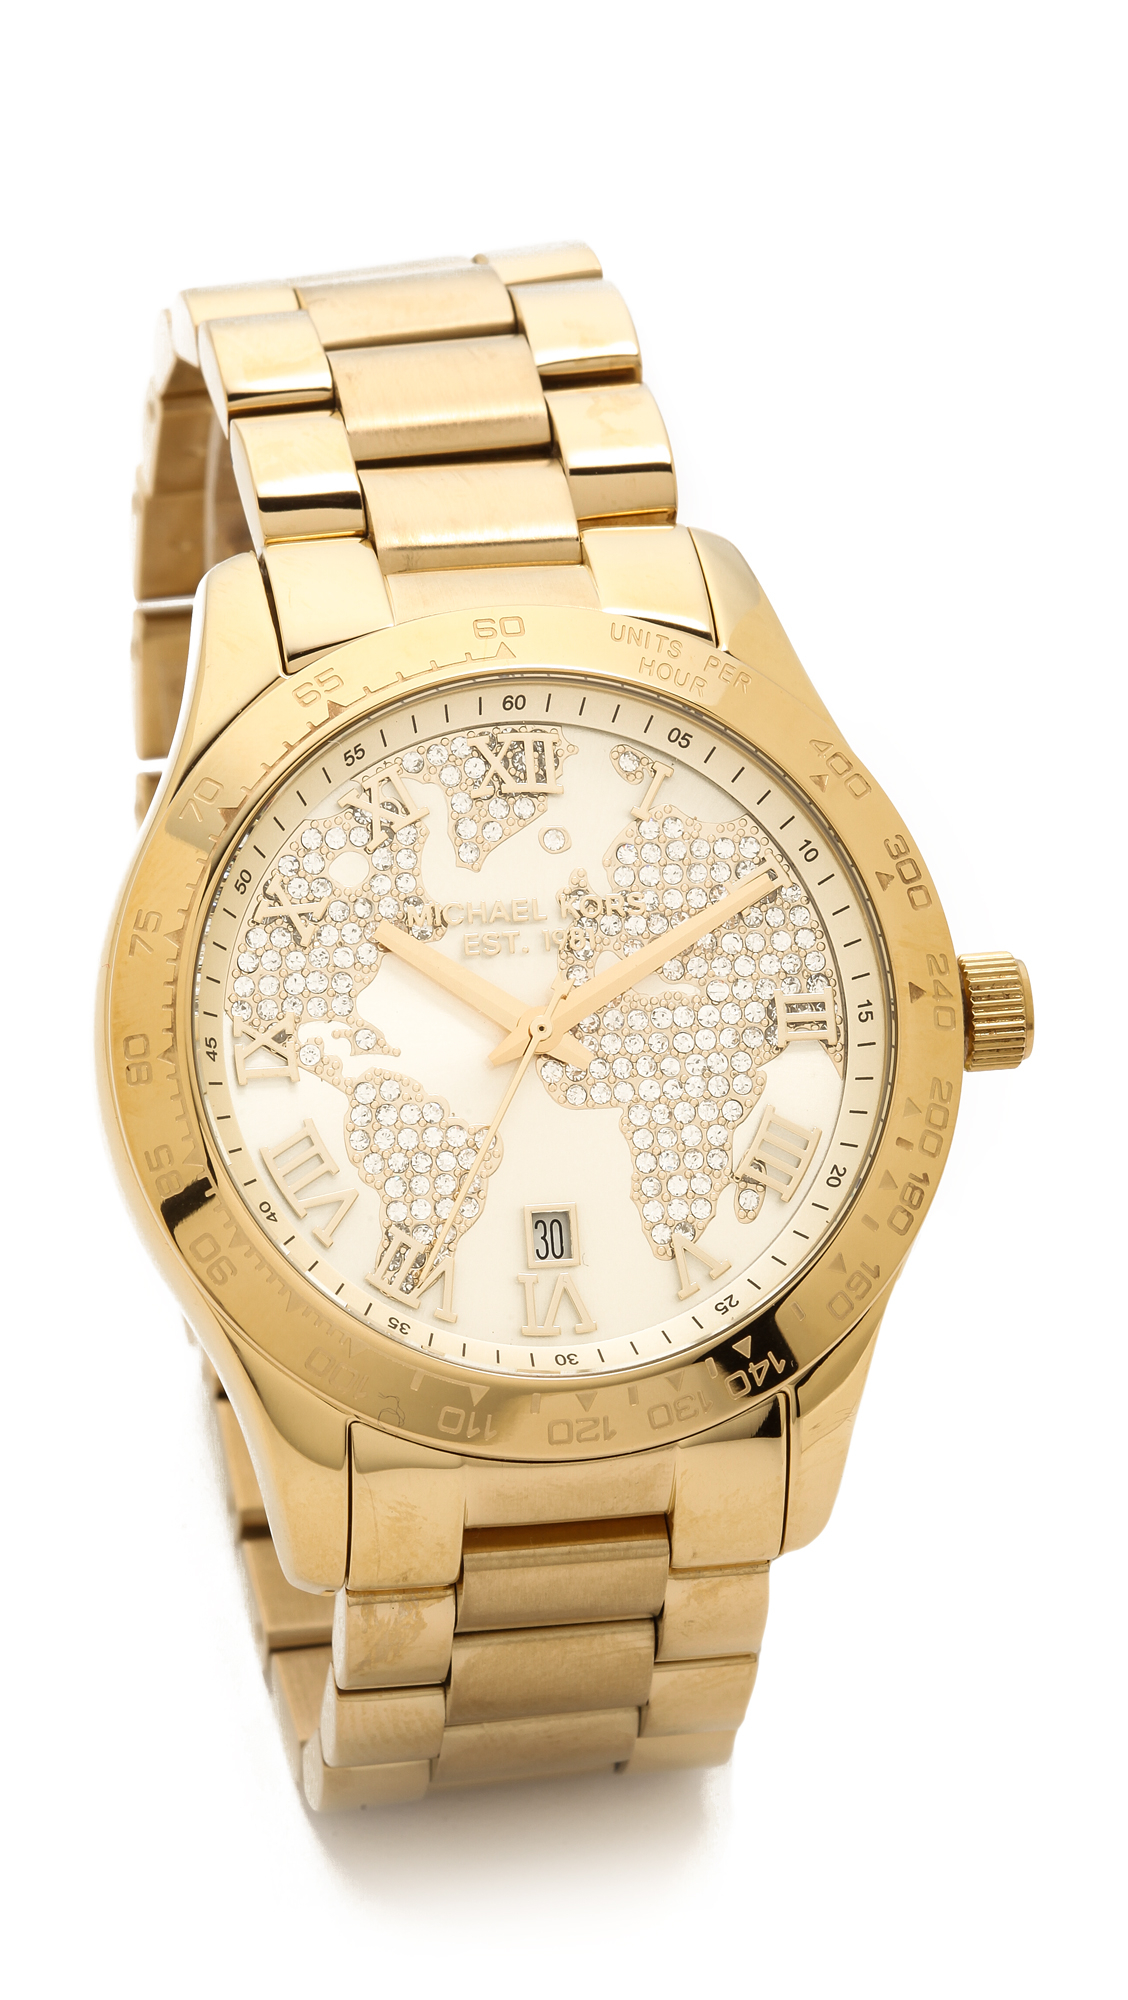 Lyst Michael Kors Global Glam Layton Watch Gold in Metallic